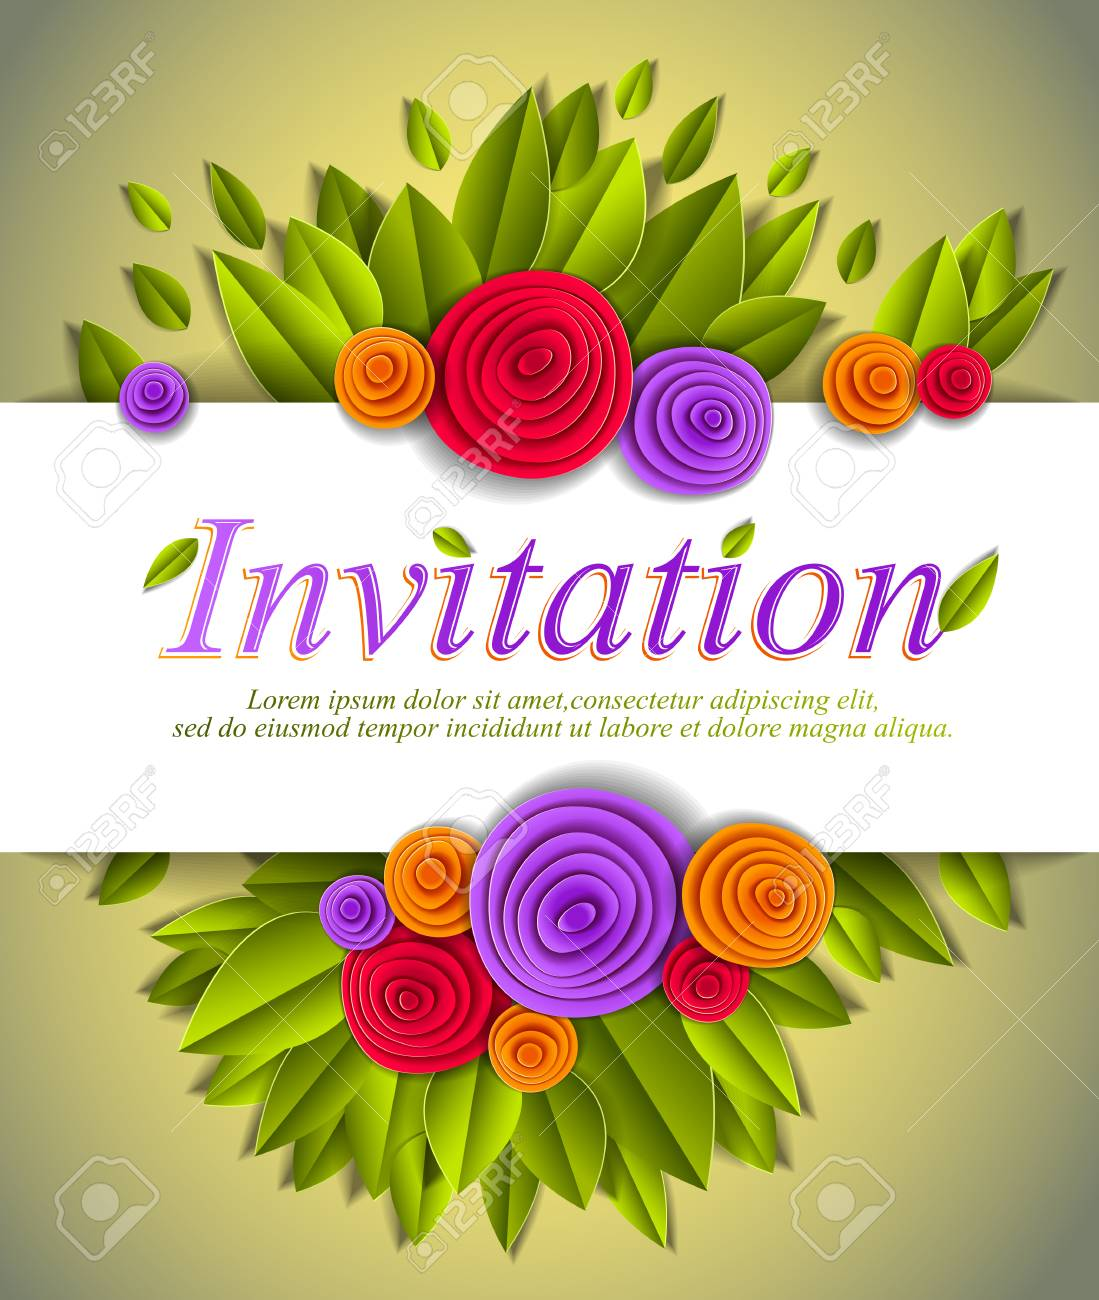 Invitation Event Card With Fresh Green Leaves And Colorful Flowers